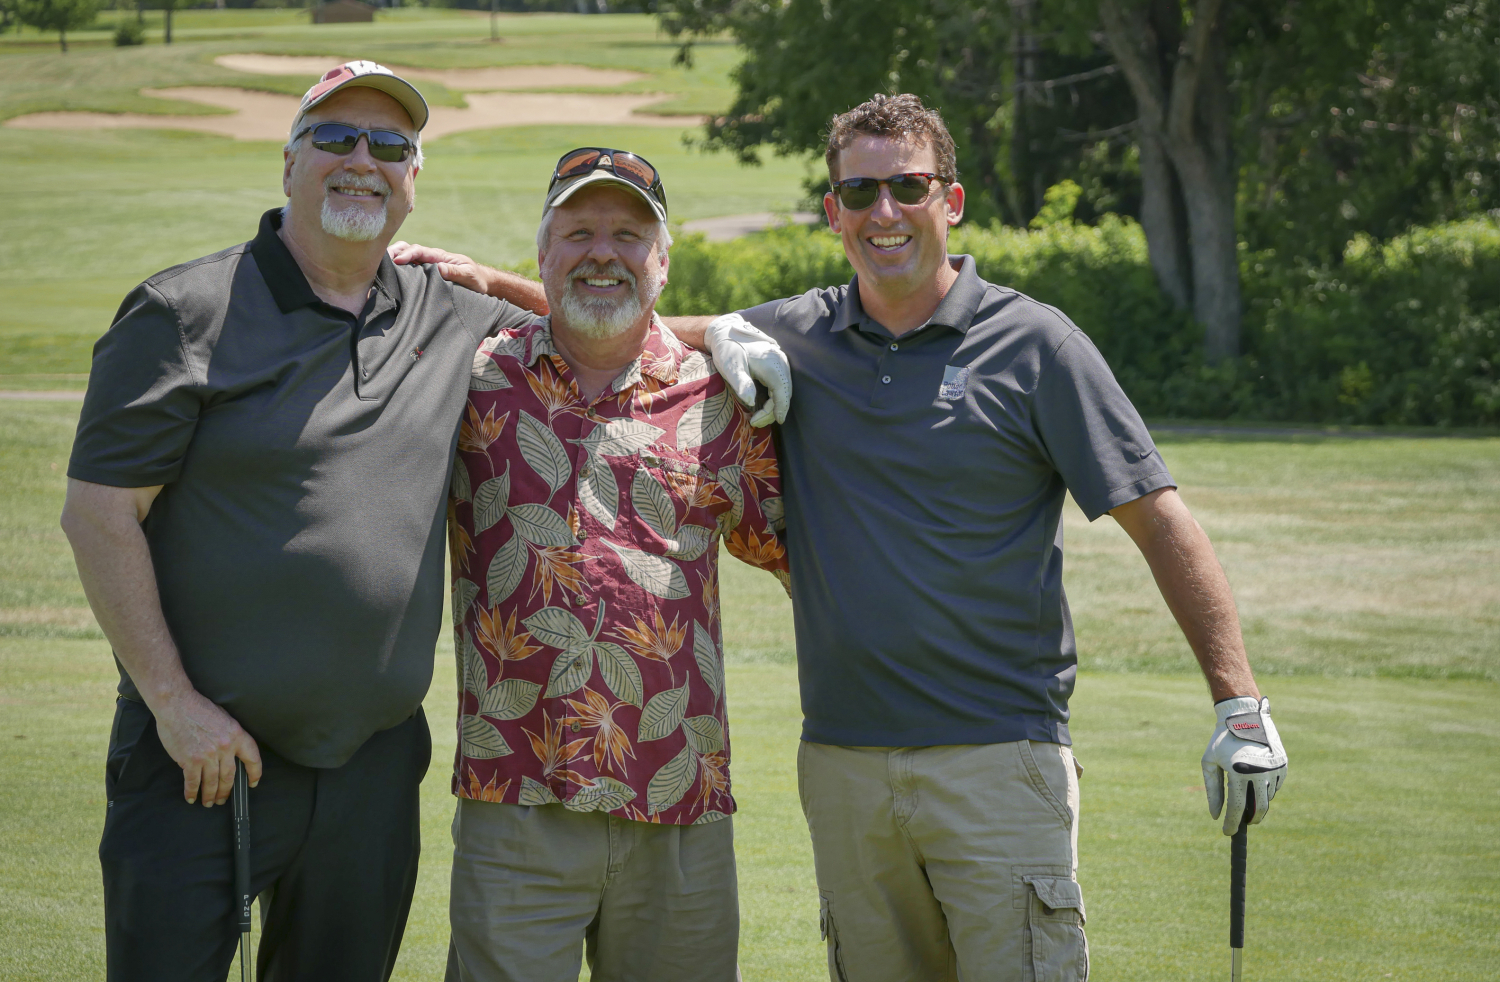 Three staff members smiling together on golf course.